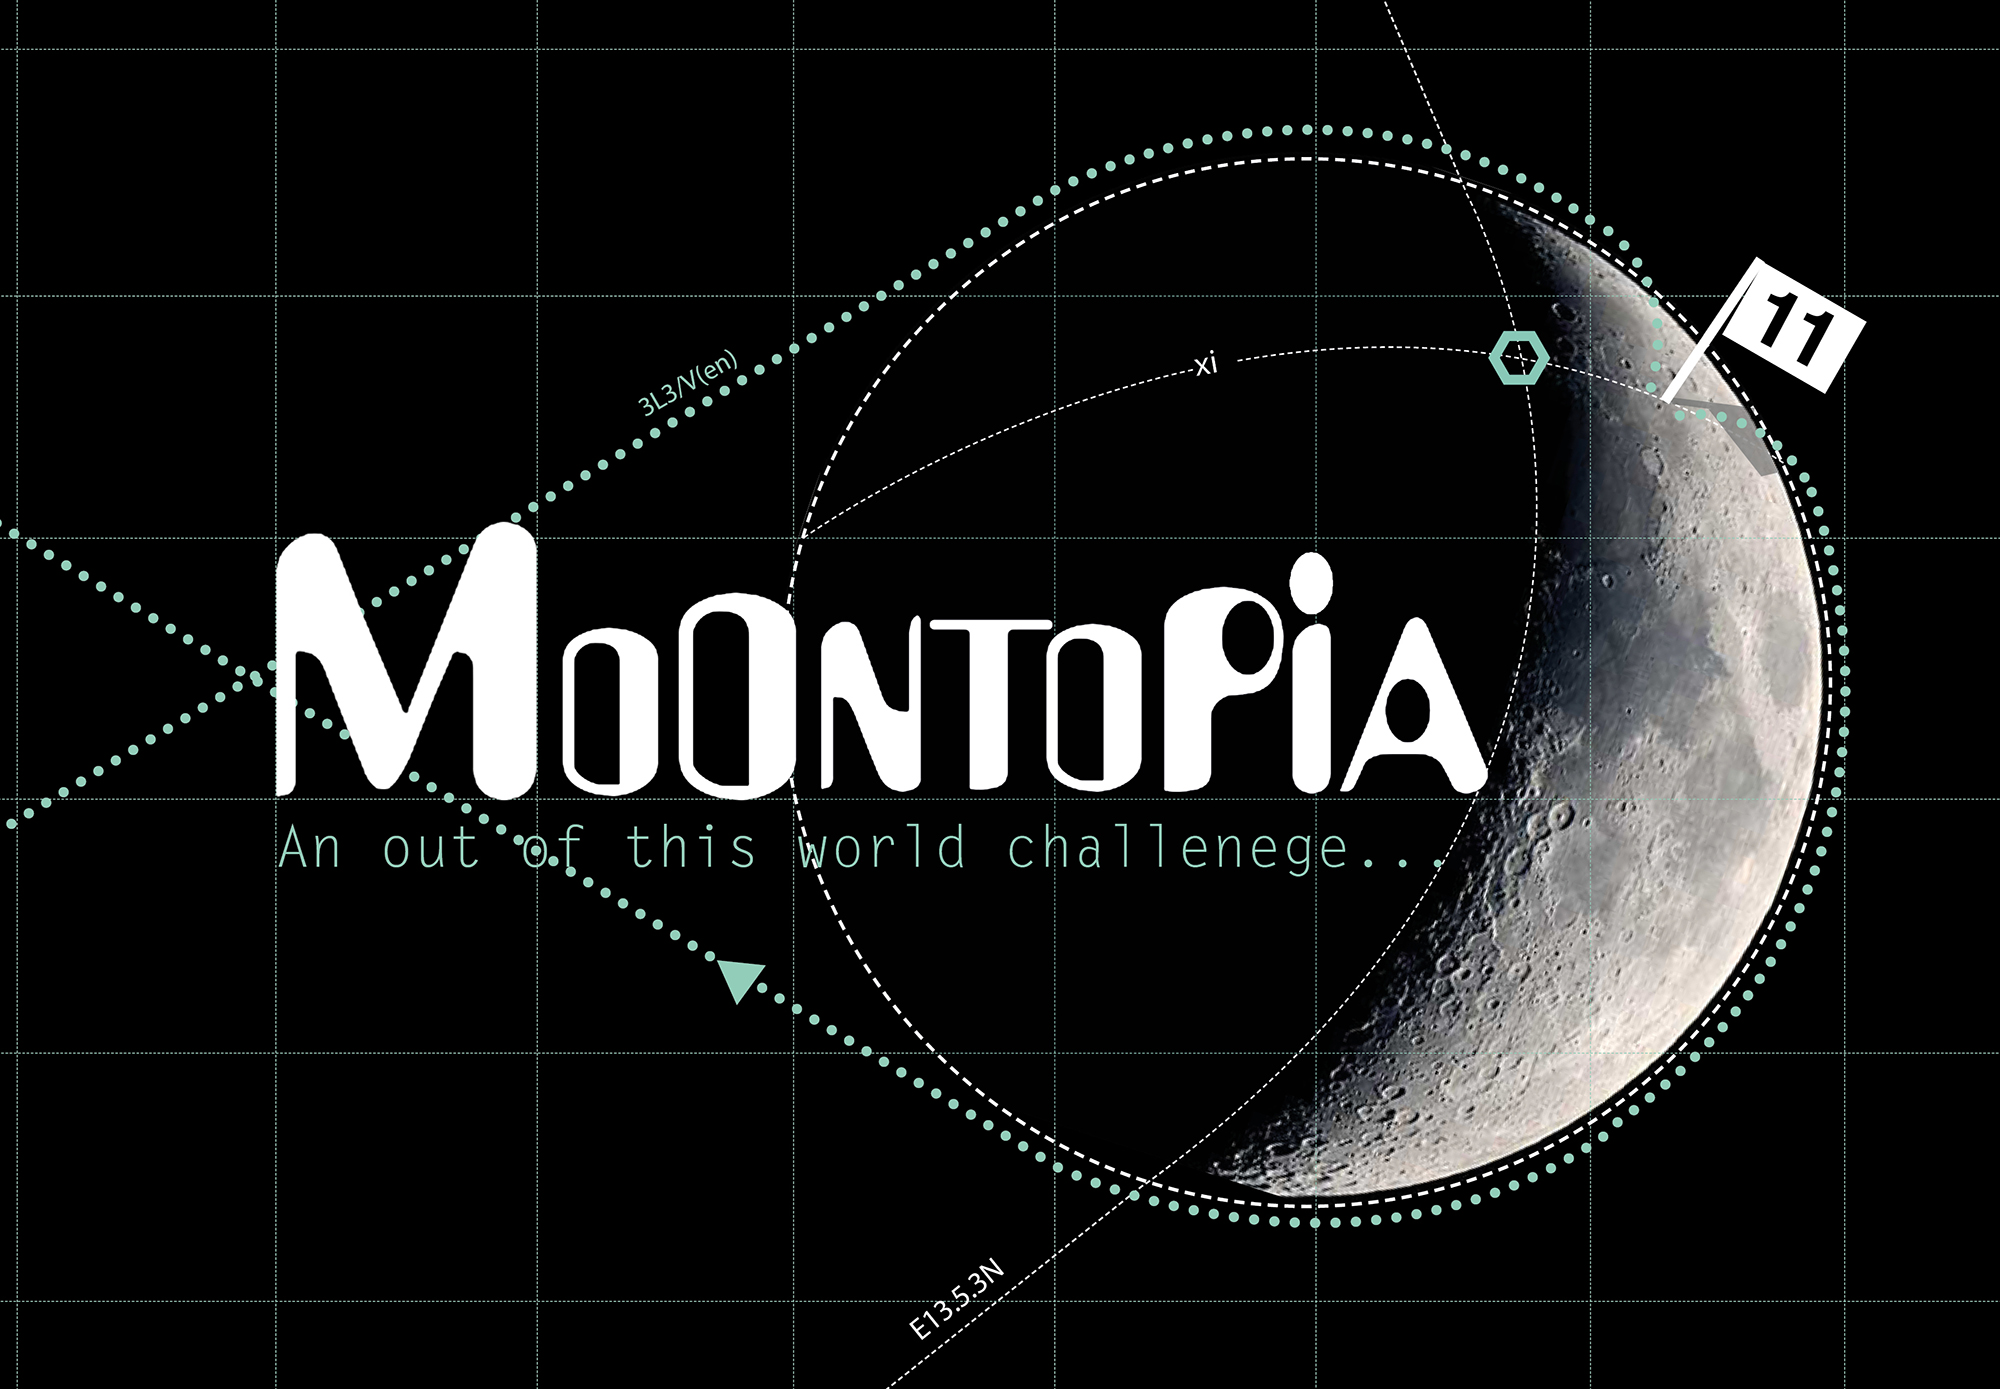 MOONTOPIA. An out of this world challenge...